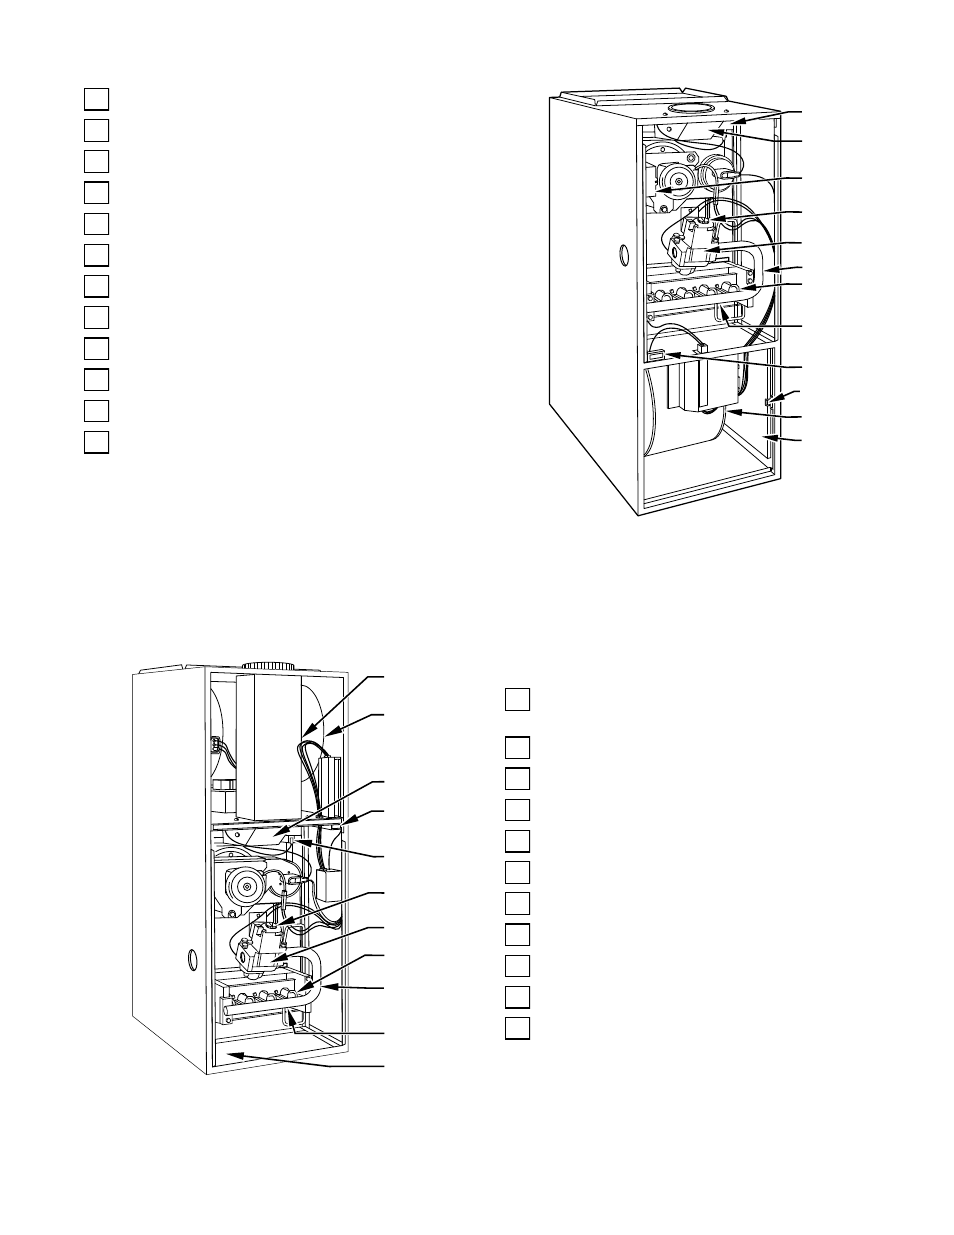 Upflow furnace components, Downflow furnace components